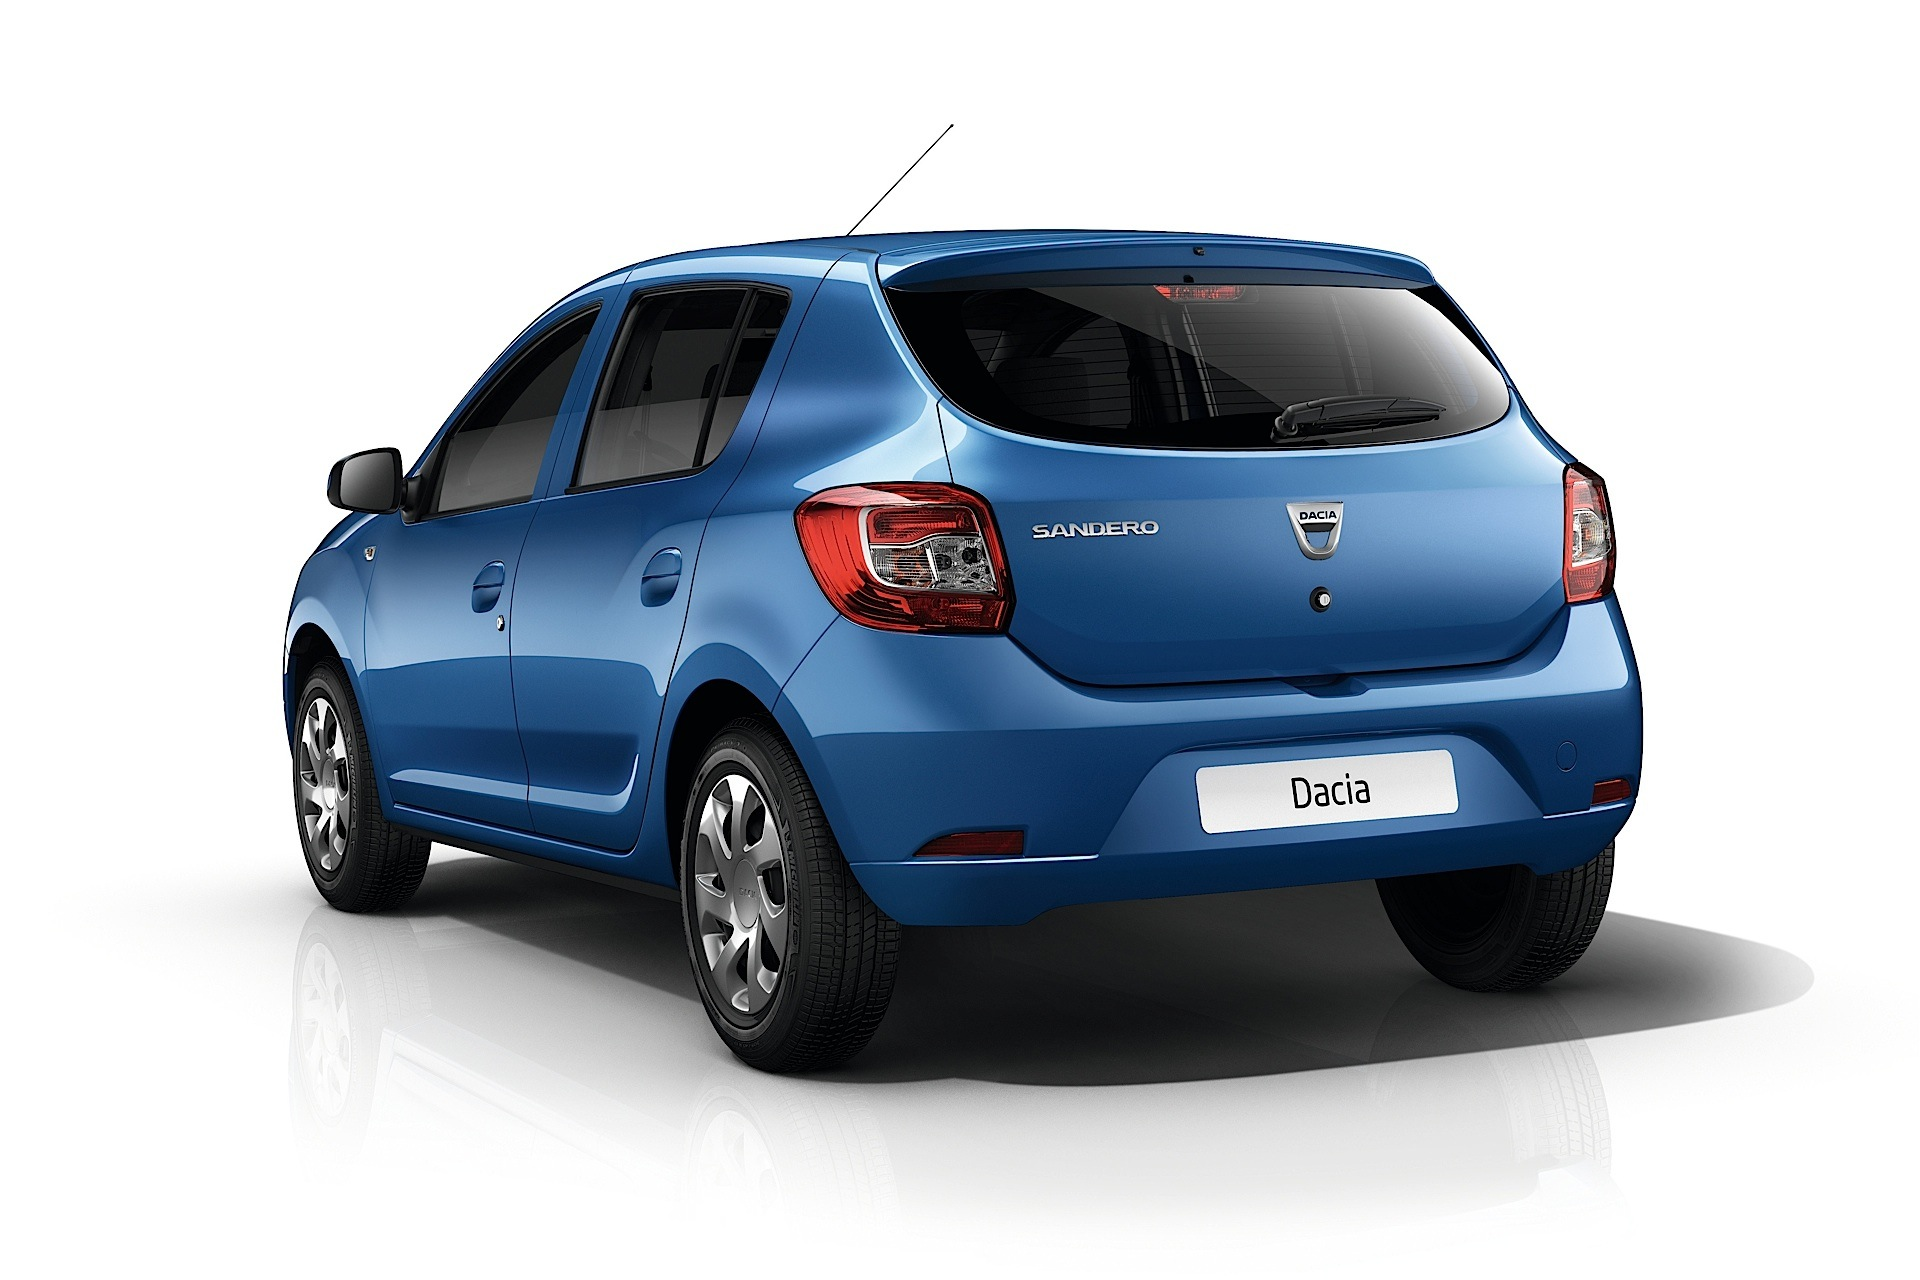 dacia sandero 2 specs 2012 2013 2014 2015 2016. Black Bedroom Furniture Sets. Home Design Ideas